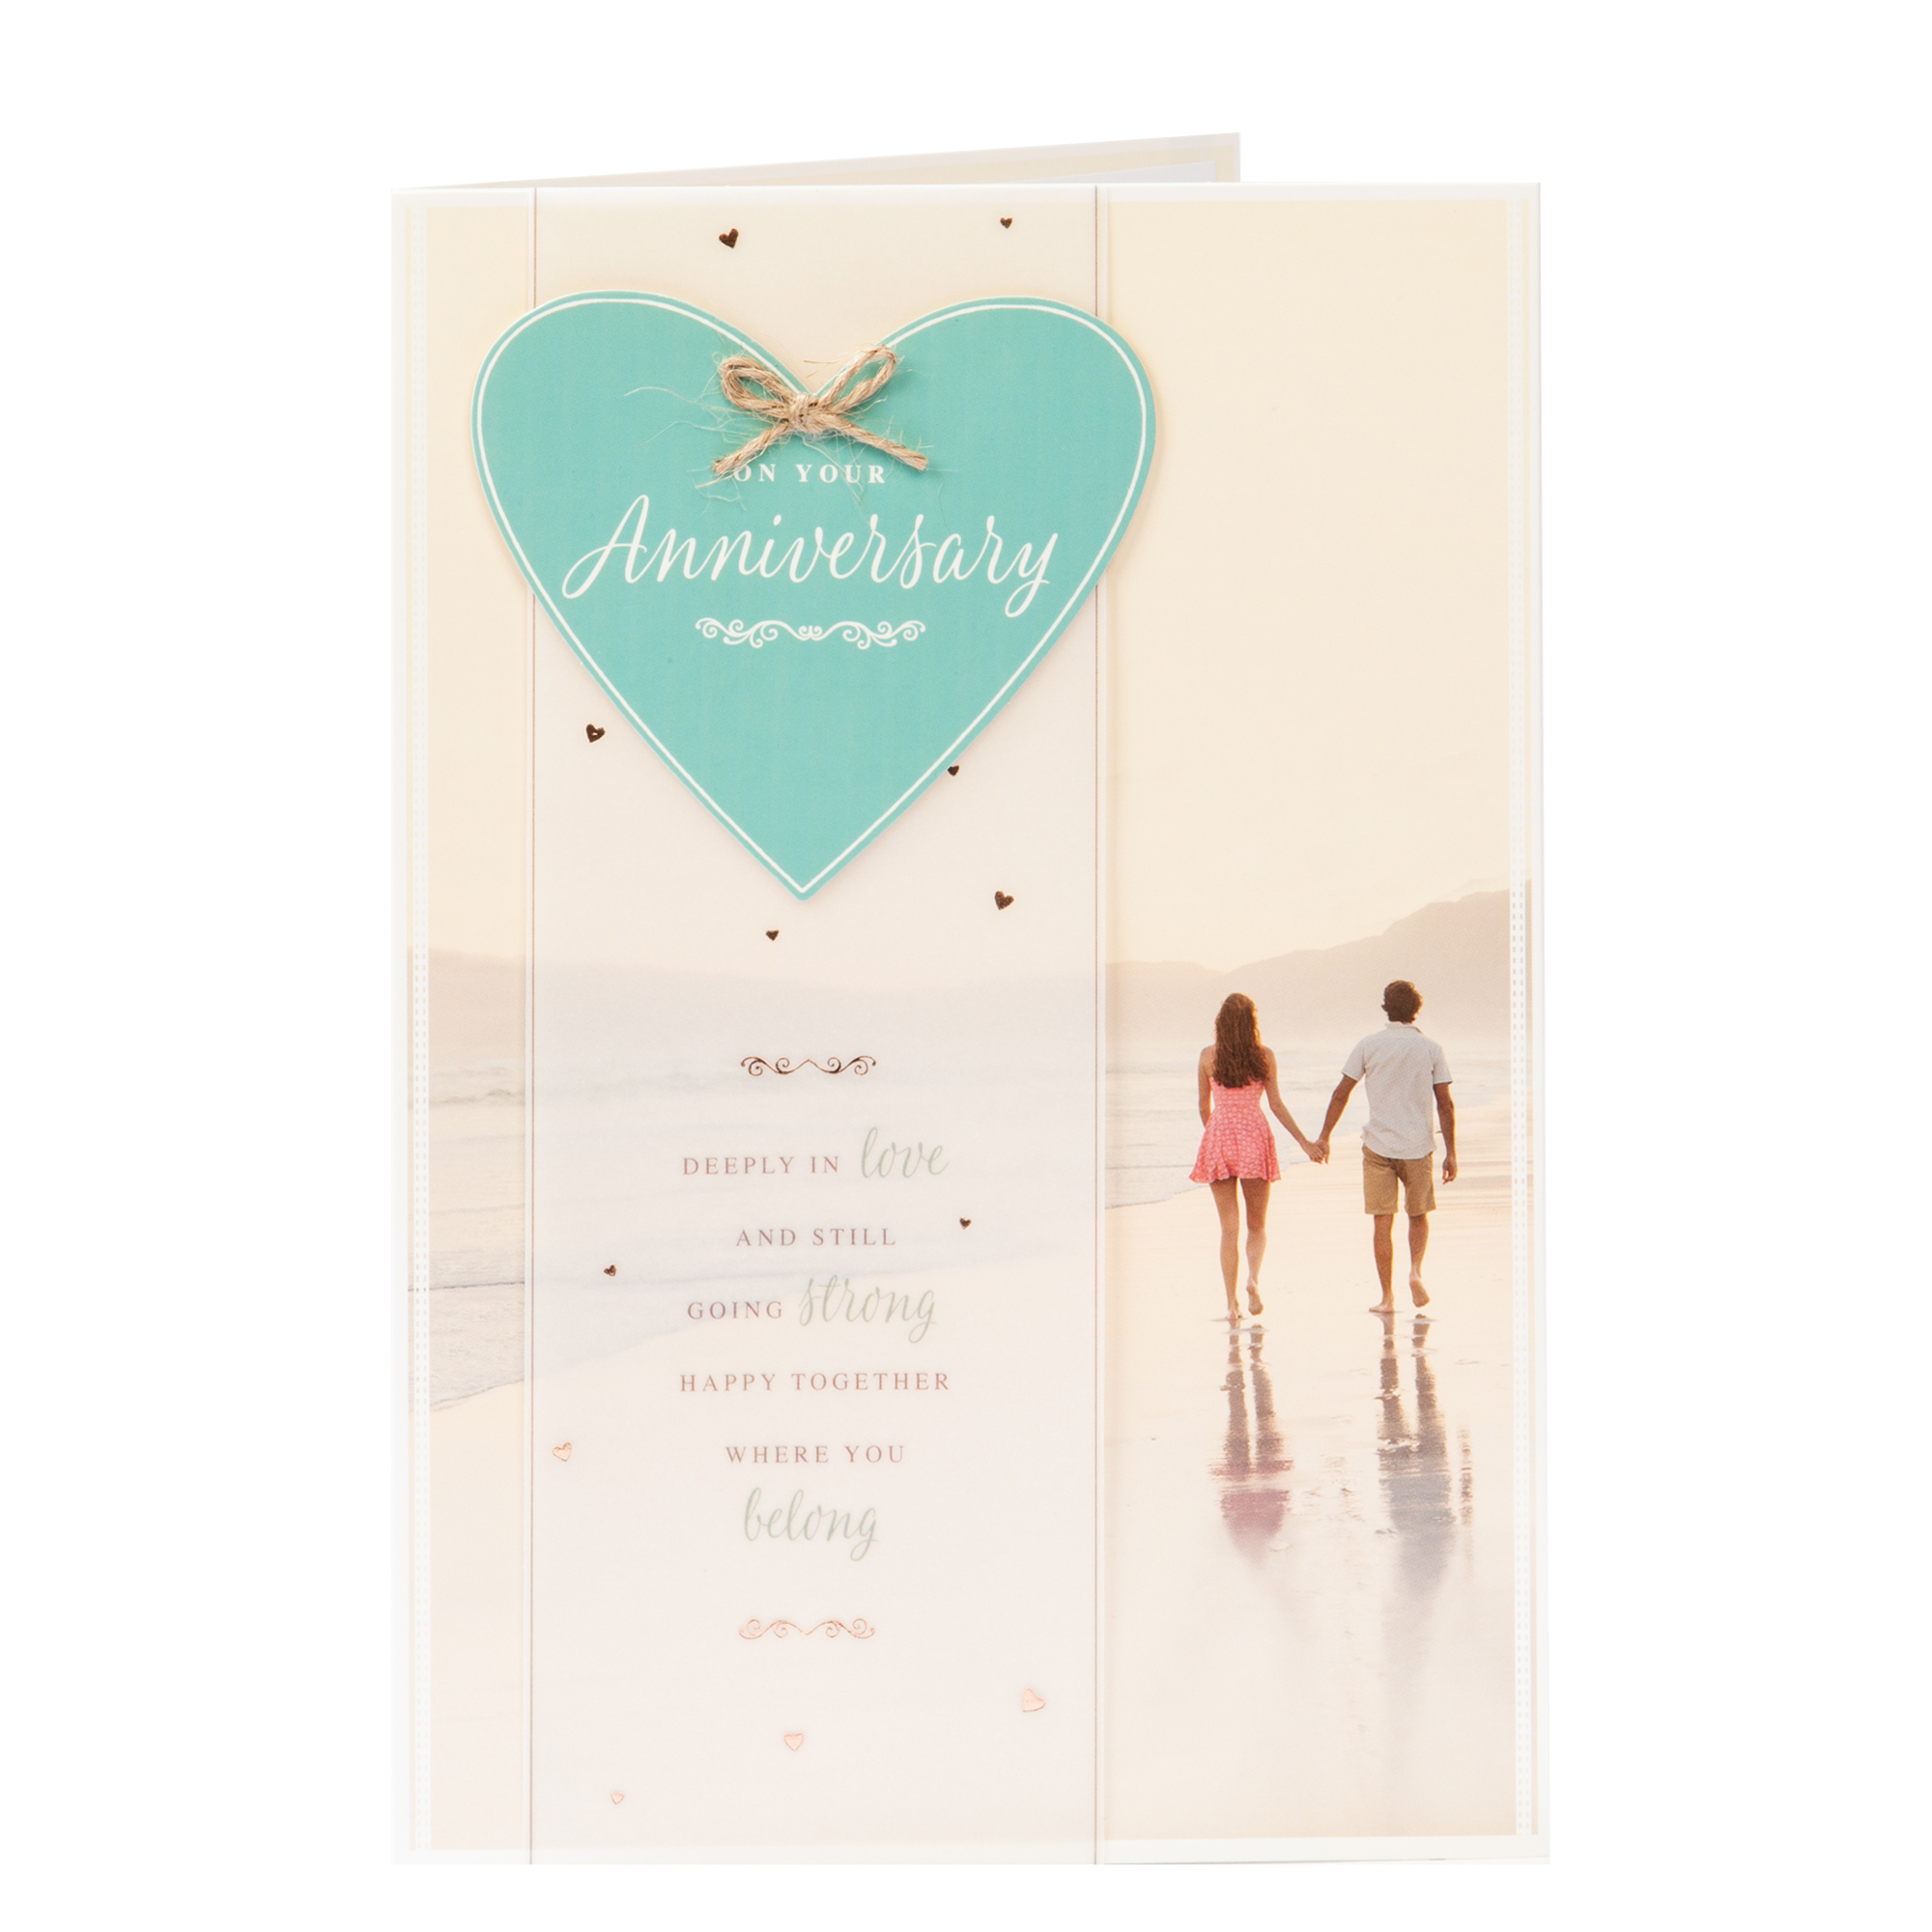 Anniversary Card - Deeply In Love